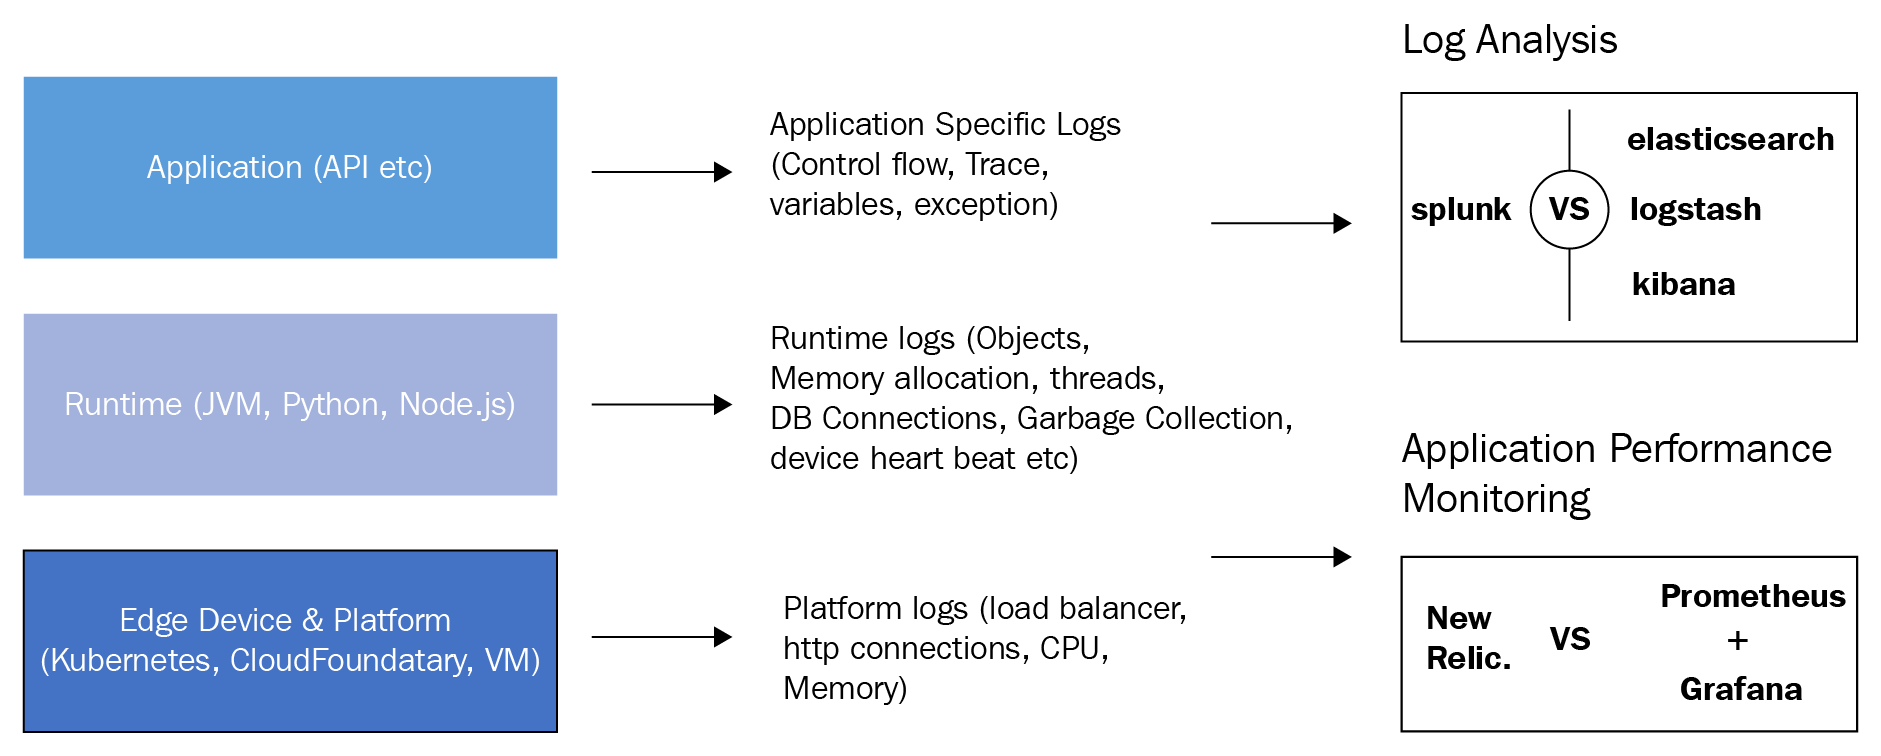 Logging architecture guidelines - Industrial Internet Application